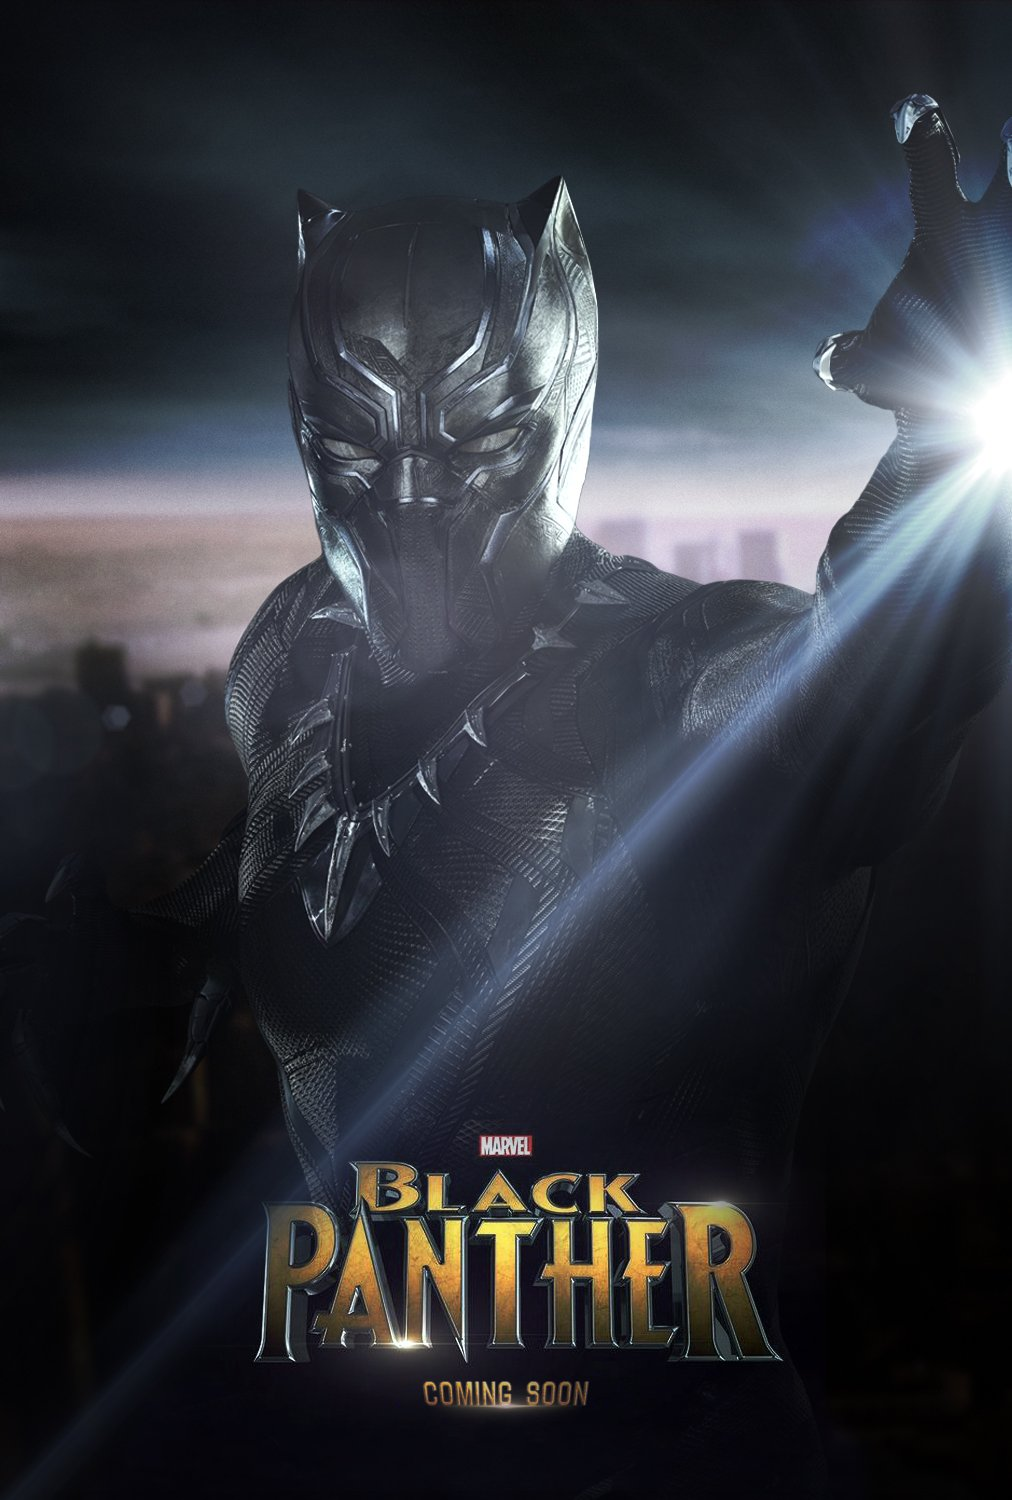 Free Download Black Panther Marvel Wallpapers 66 Wallpapers 1012x1500 For Your Desktop Mobile Tablet Explore 80 Black Panther Movie Wallpapers Black Panther Movie Wallpapers Black Panther Background Black Panther Wallpaper